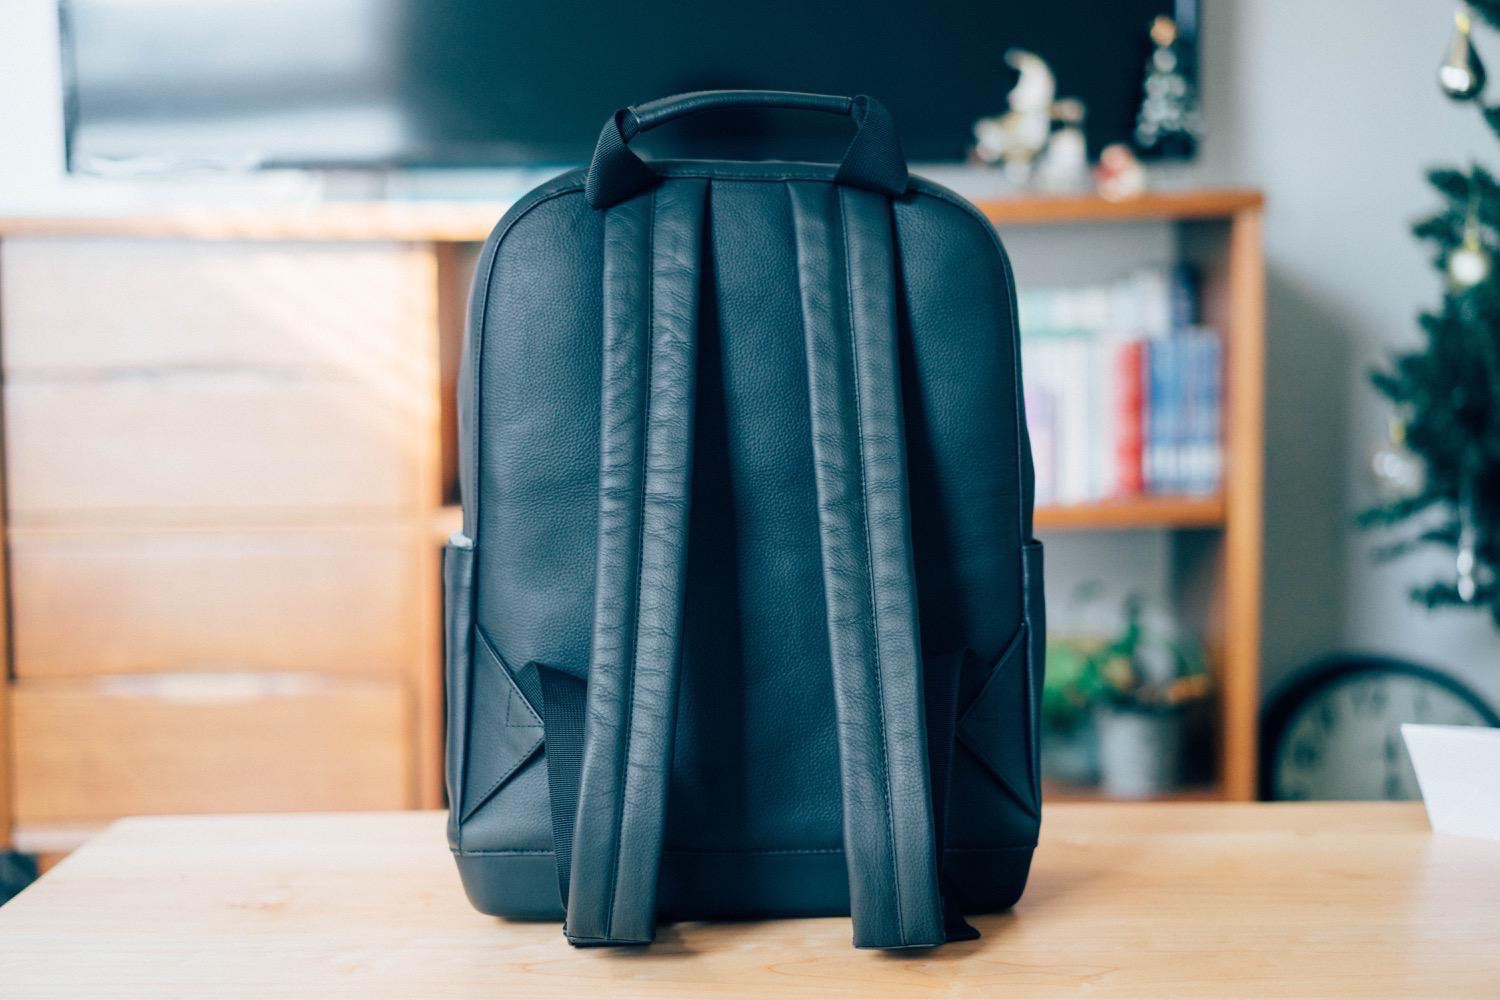 Moleskine backpack 11